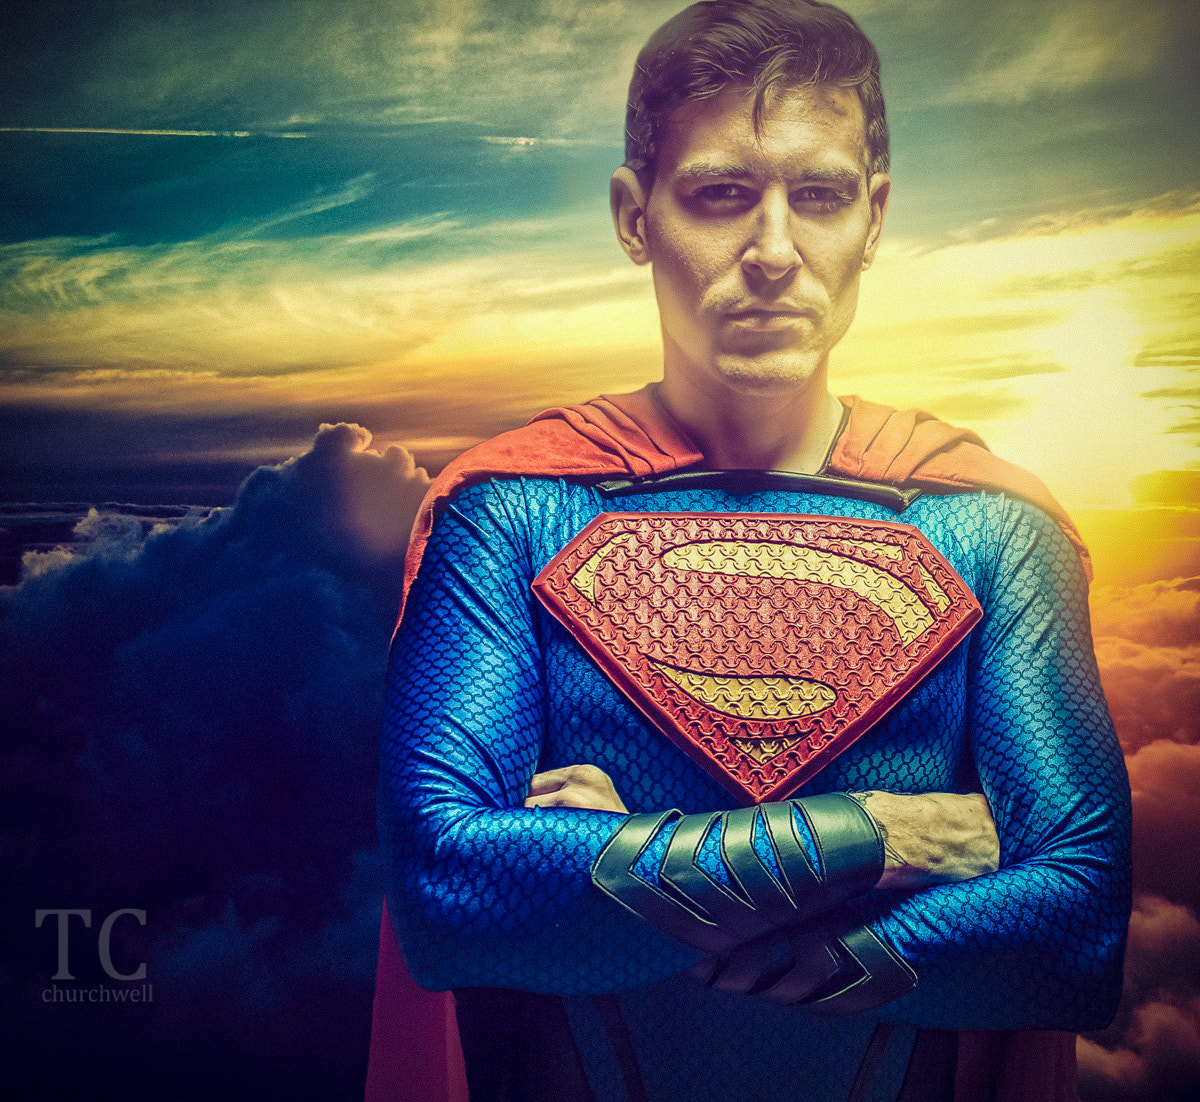 Photograph SuperMan by Thomas Churchwell on 500px